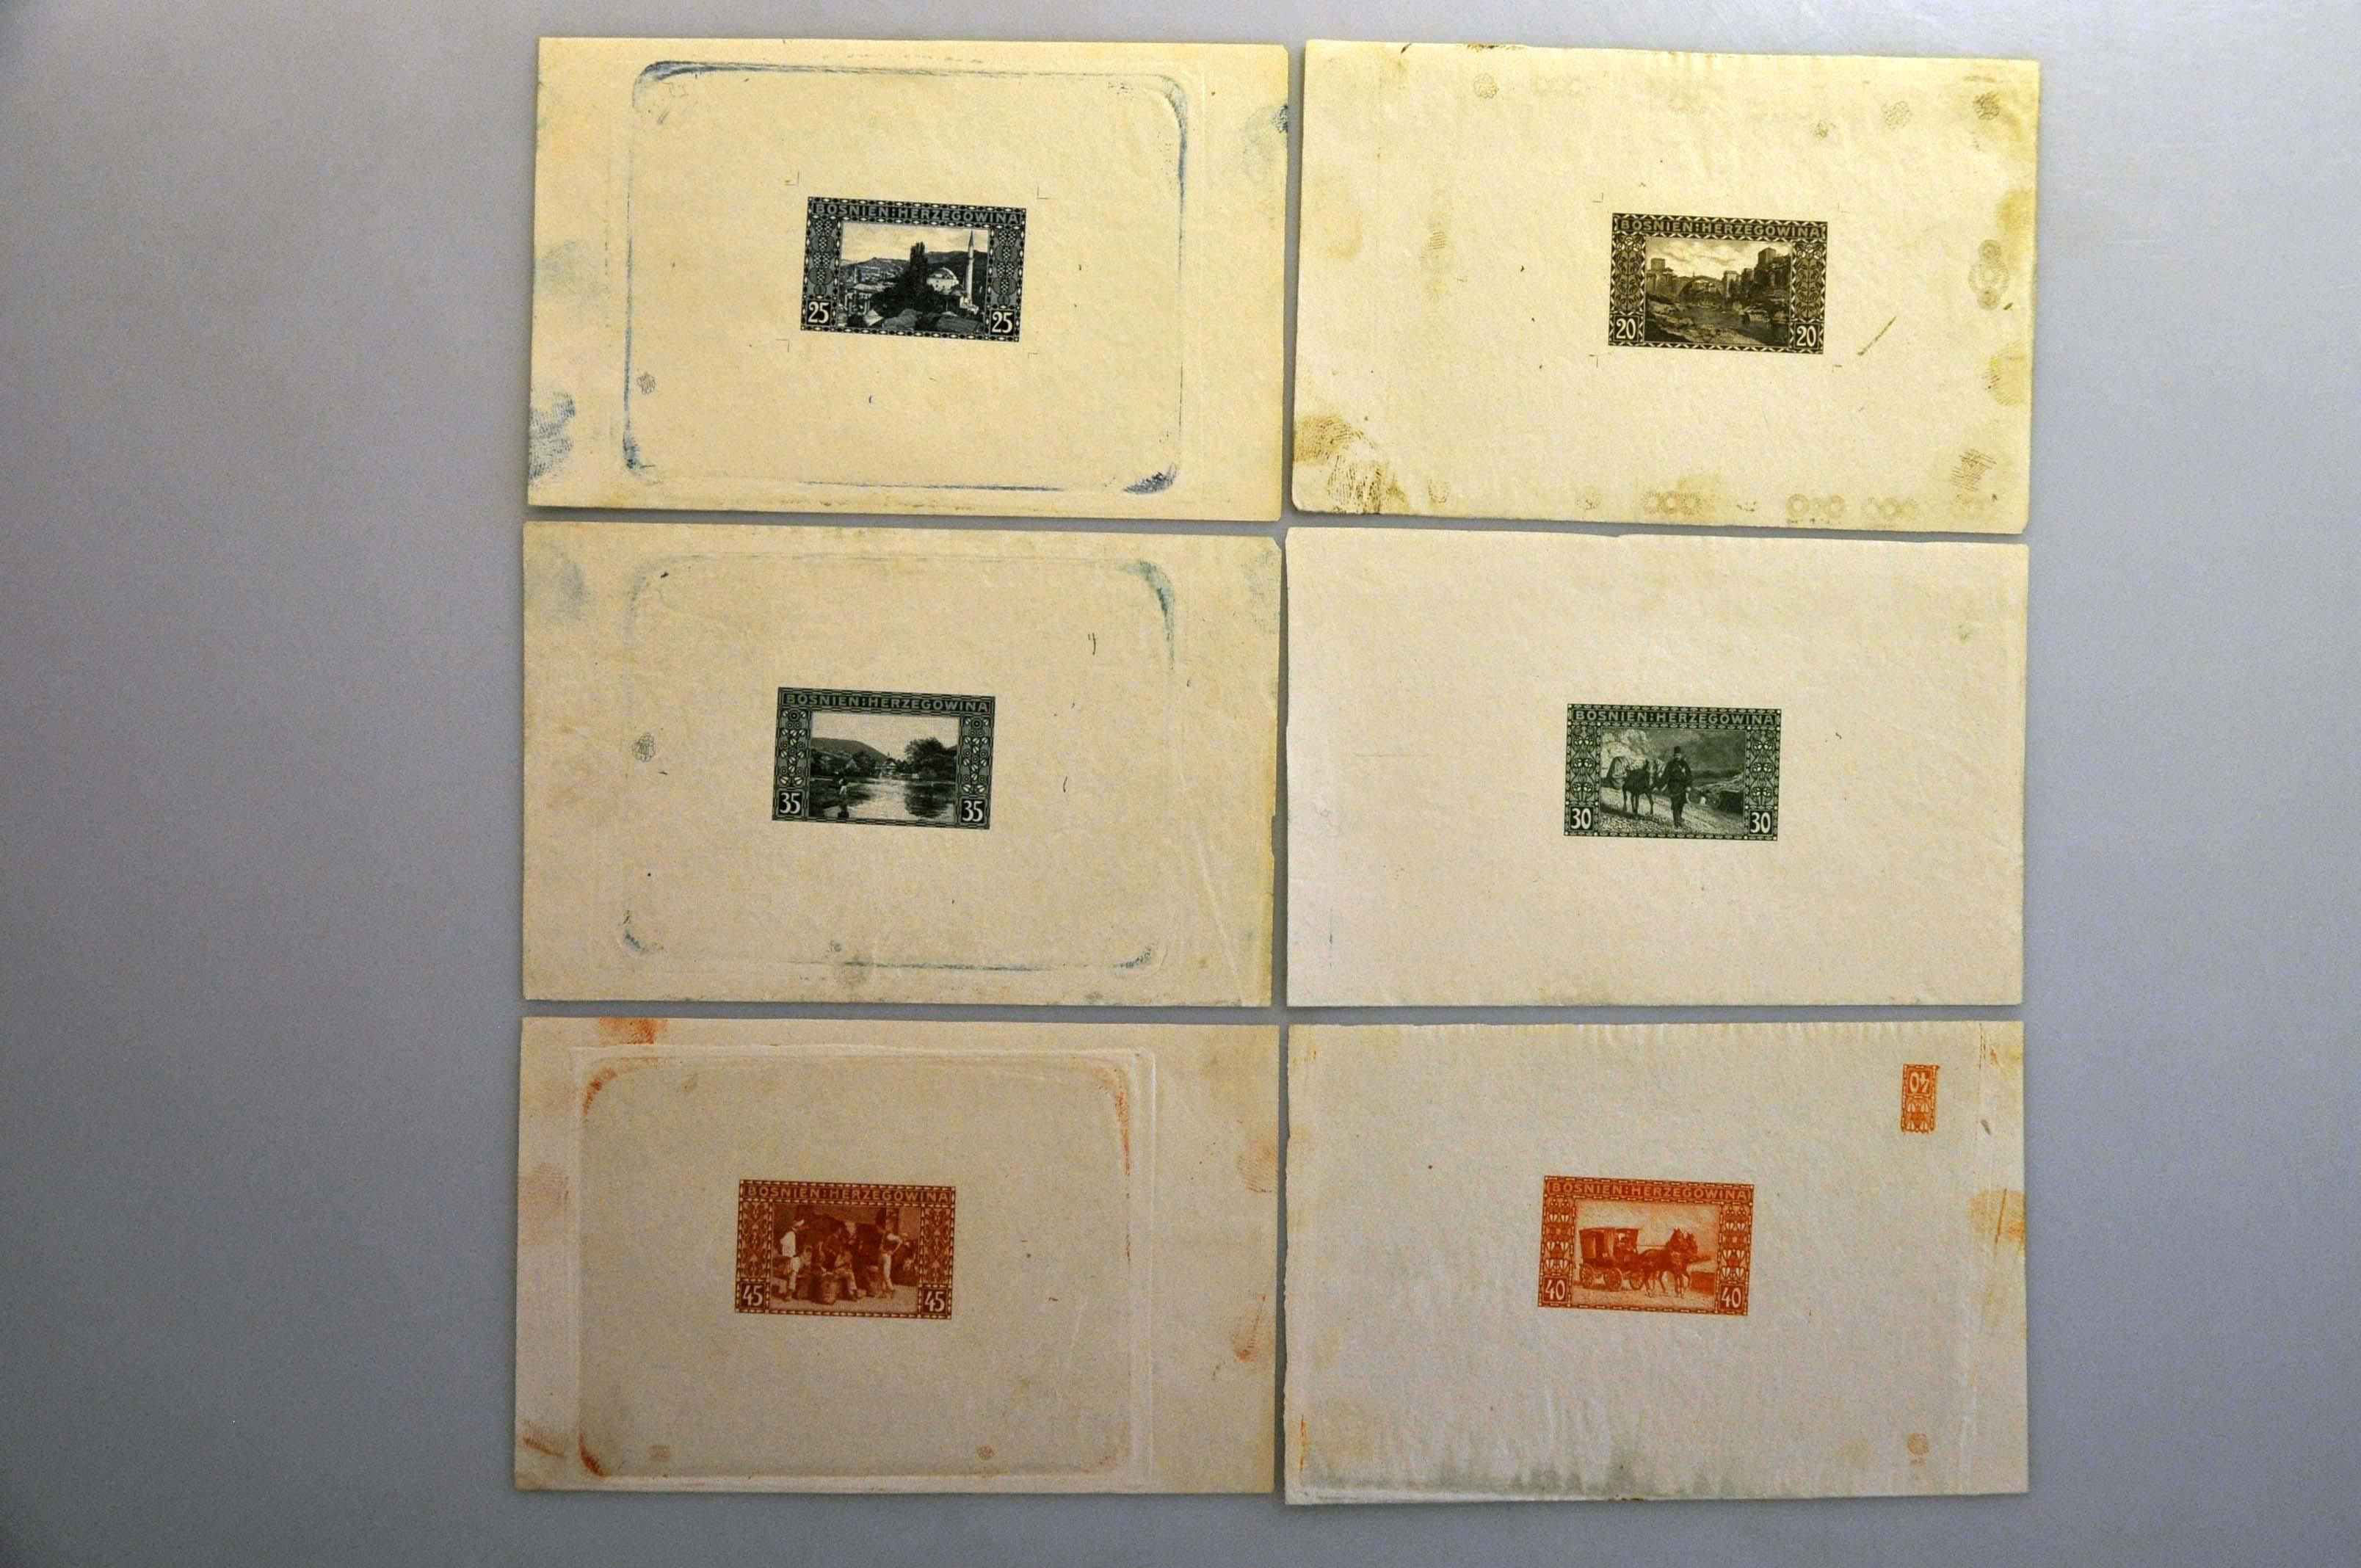 Lot 20 - Austria and former territories Bosnia and Herzegowina (Austrian) -  Corinphila Veilingen Auction 244 -Netherlands and former colonies, WW2 Postal History, Bosnia, German and British colonies, Egypt. - Day 1